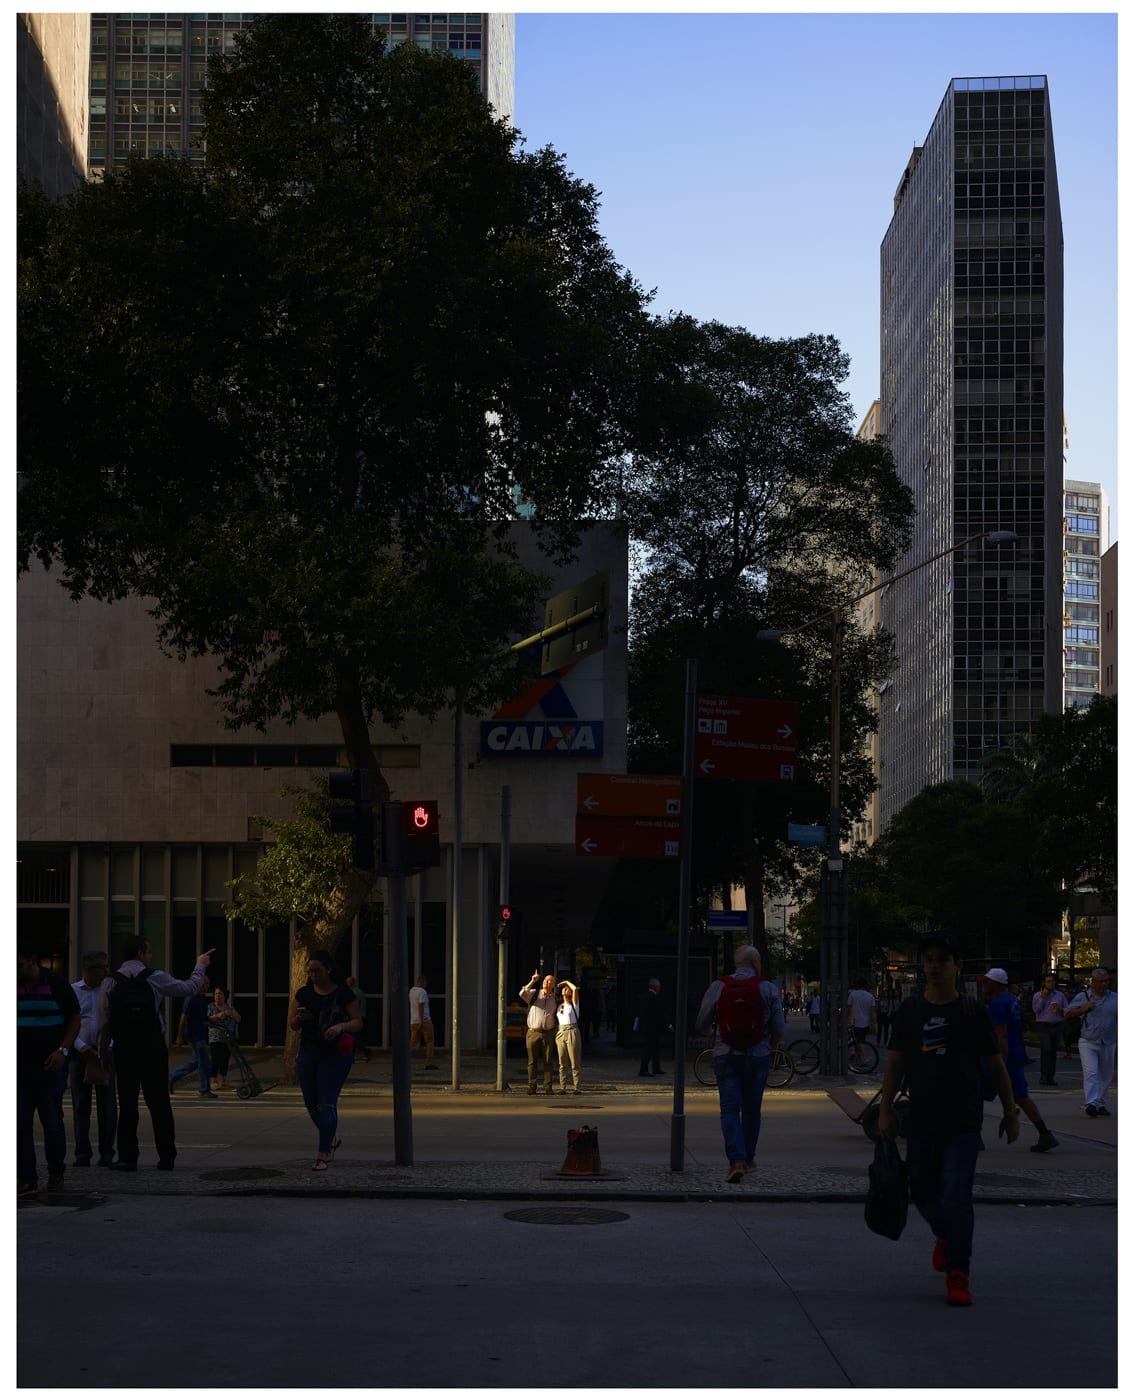 Cross Road Blues (Av. Almirante Barroso, Rio, Brazil), 2019 Oli Kellett